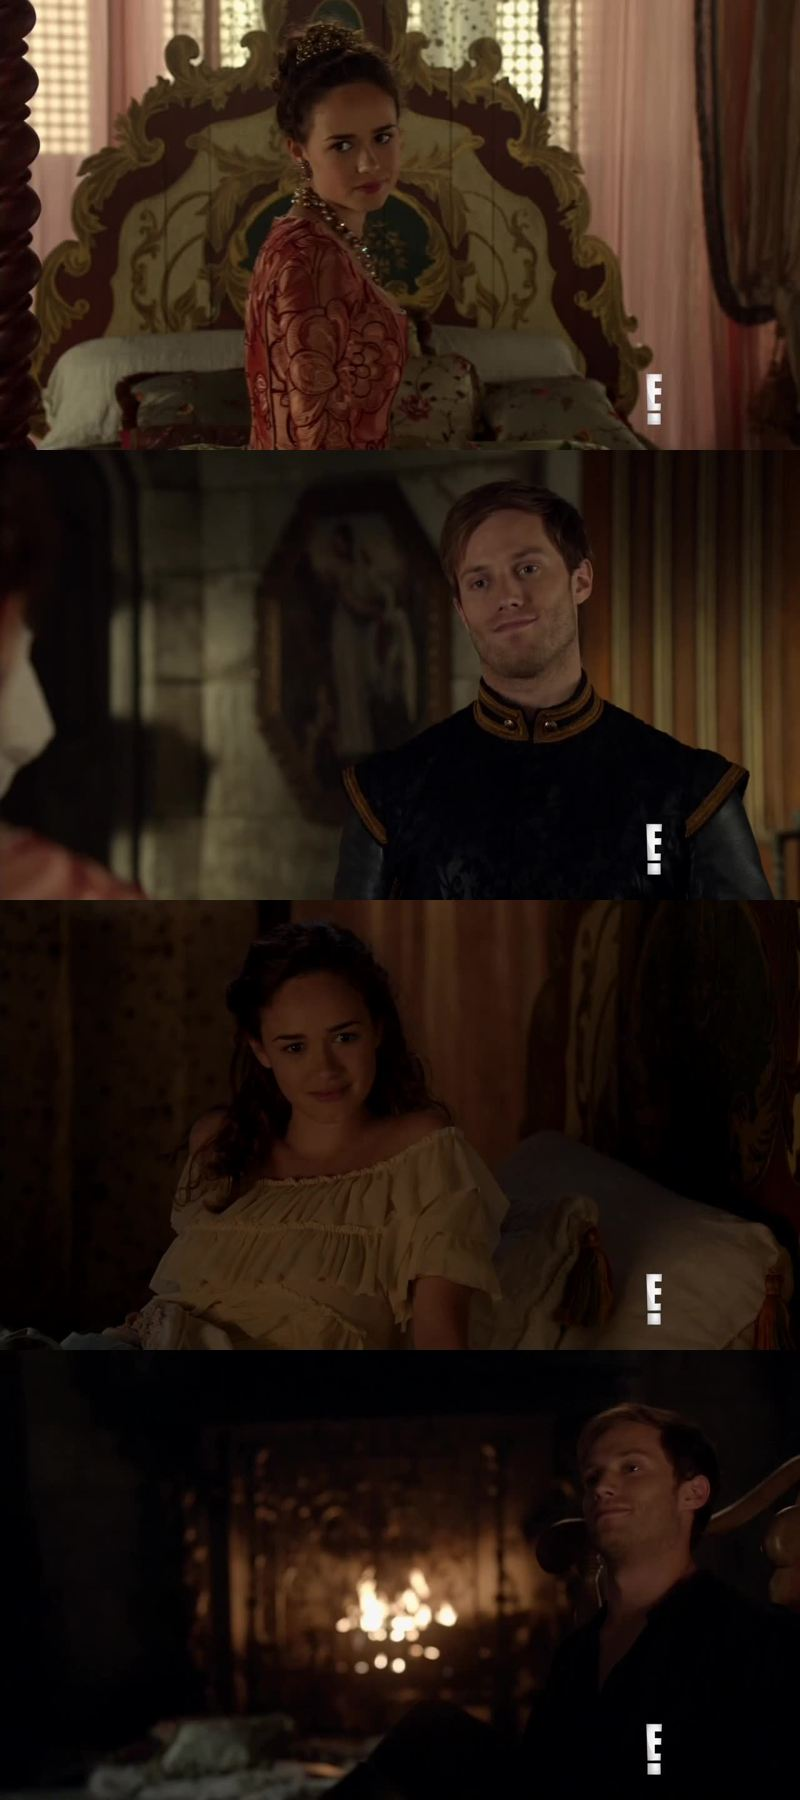 I ship them! I loved Leith and Greer relationship and I absolutely love Greer but she had her chance and she wasted it several times. Leith deserves to be happy and I thing he would make Princess Claude a better person. That's what love is all about...